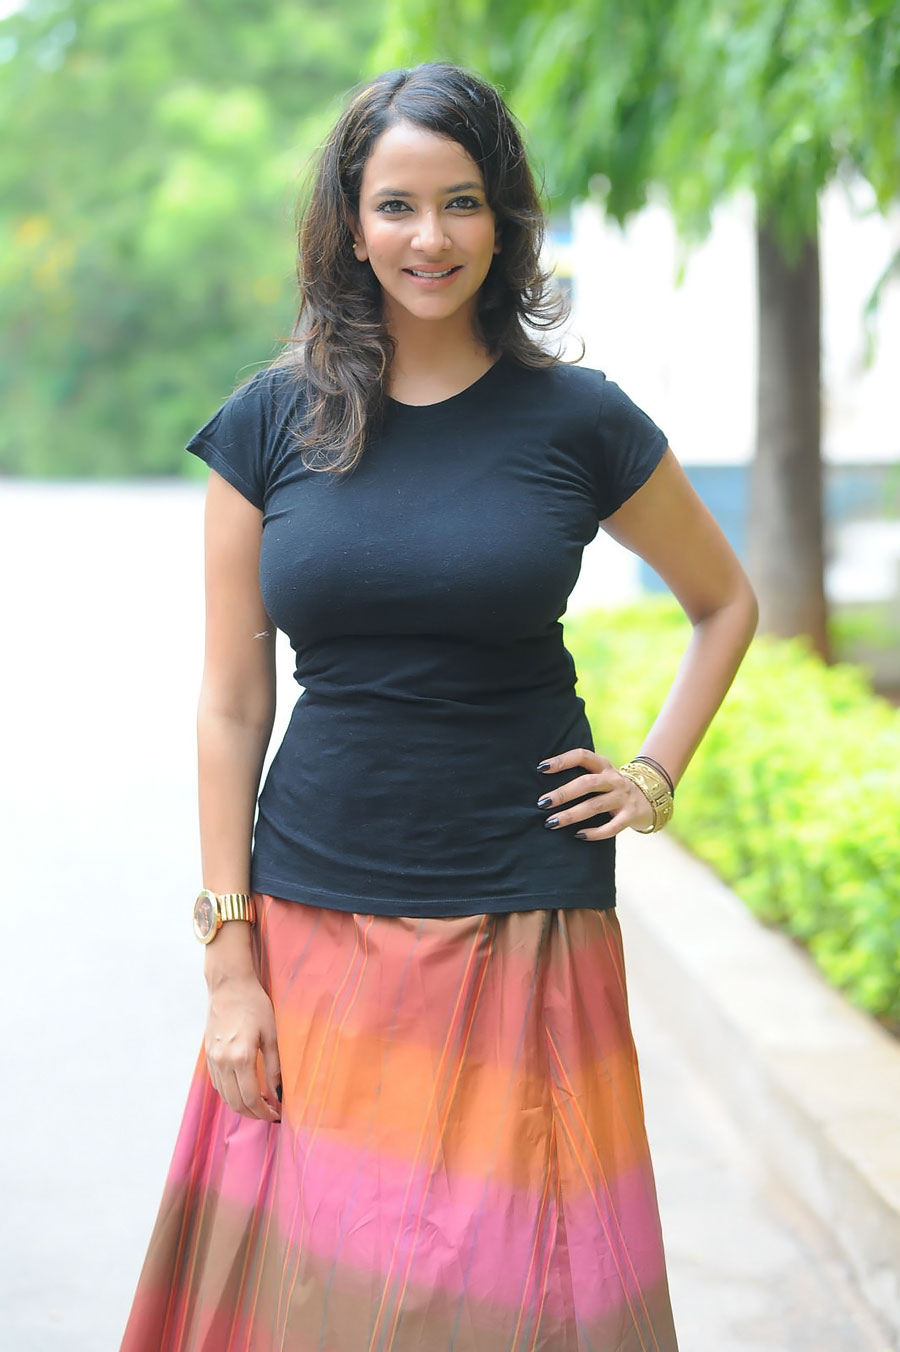 lakshmi actress manchu prasanna latest tight telugu indian shirt boobs tshirt navel stills spicy saree wallpapers south bollywood cleavage cinemapics